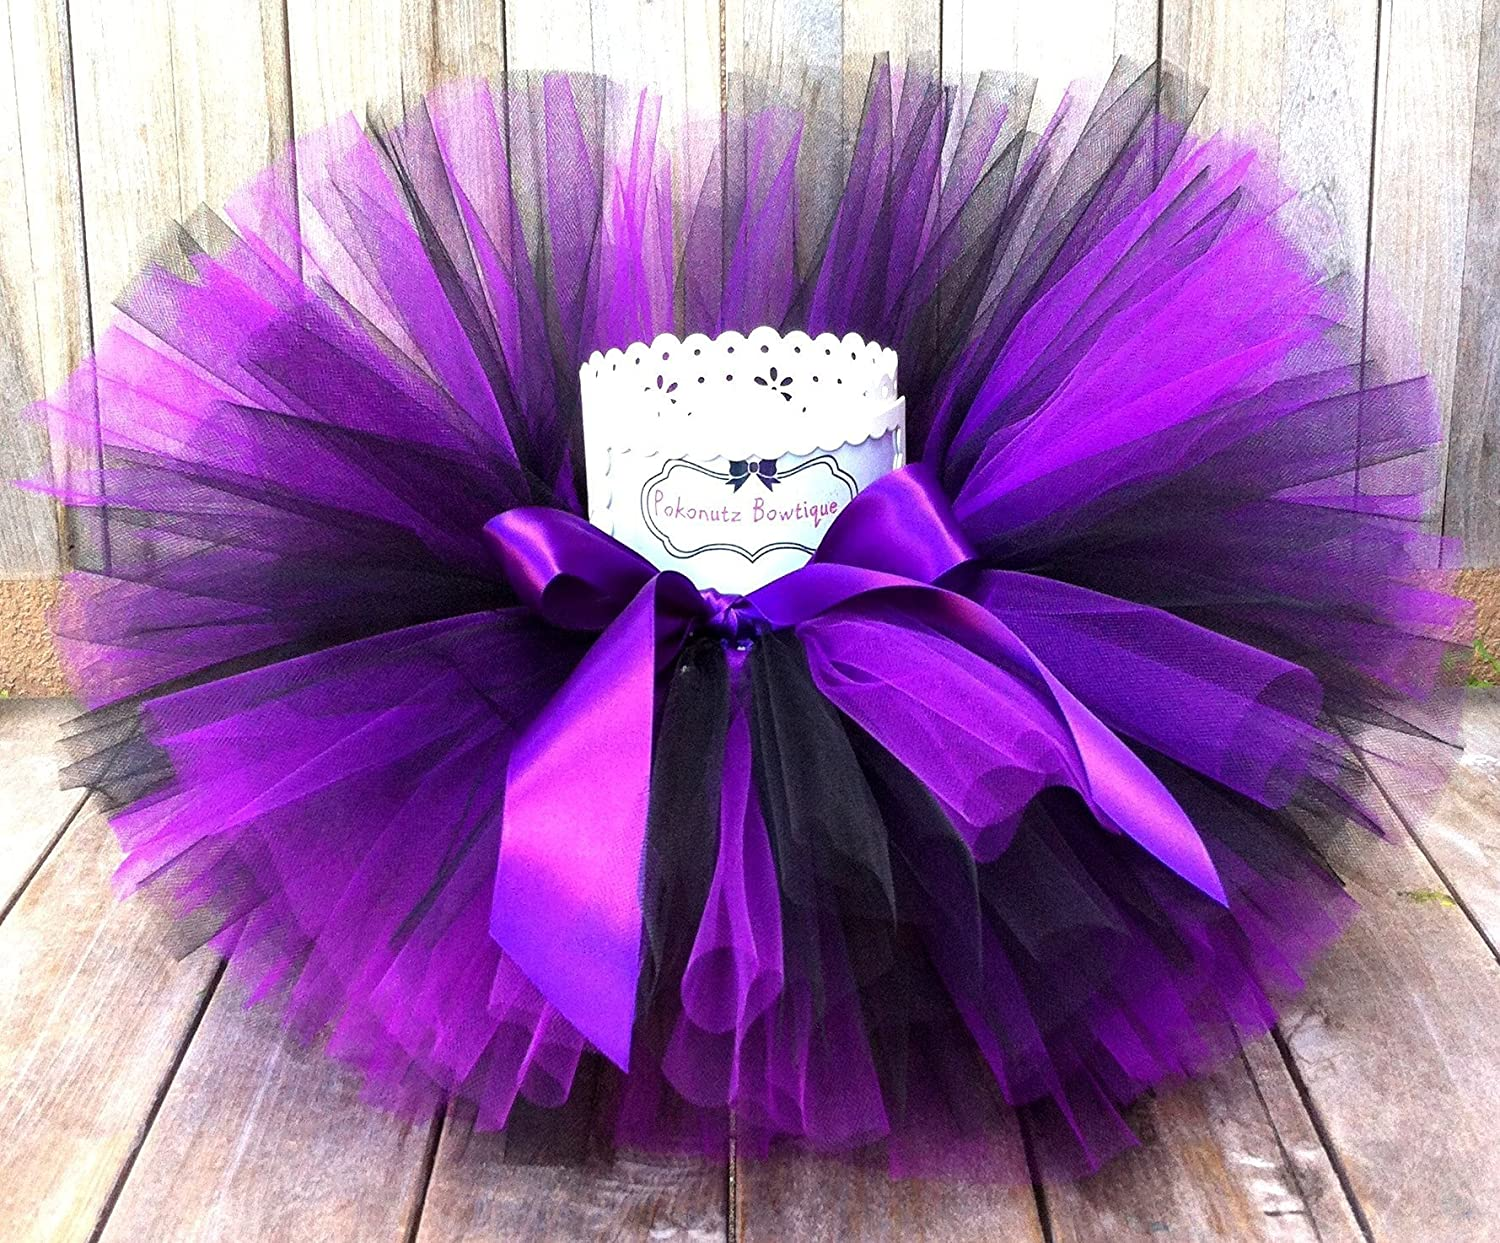 Decendants Tutu, MAL Tutu, Purple Tutu, Baby Tutu, Girls Tutu, Birthday Tutu, Infant Tutu, Newborn Tutu, Photo Prop Tutu